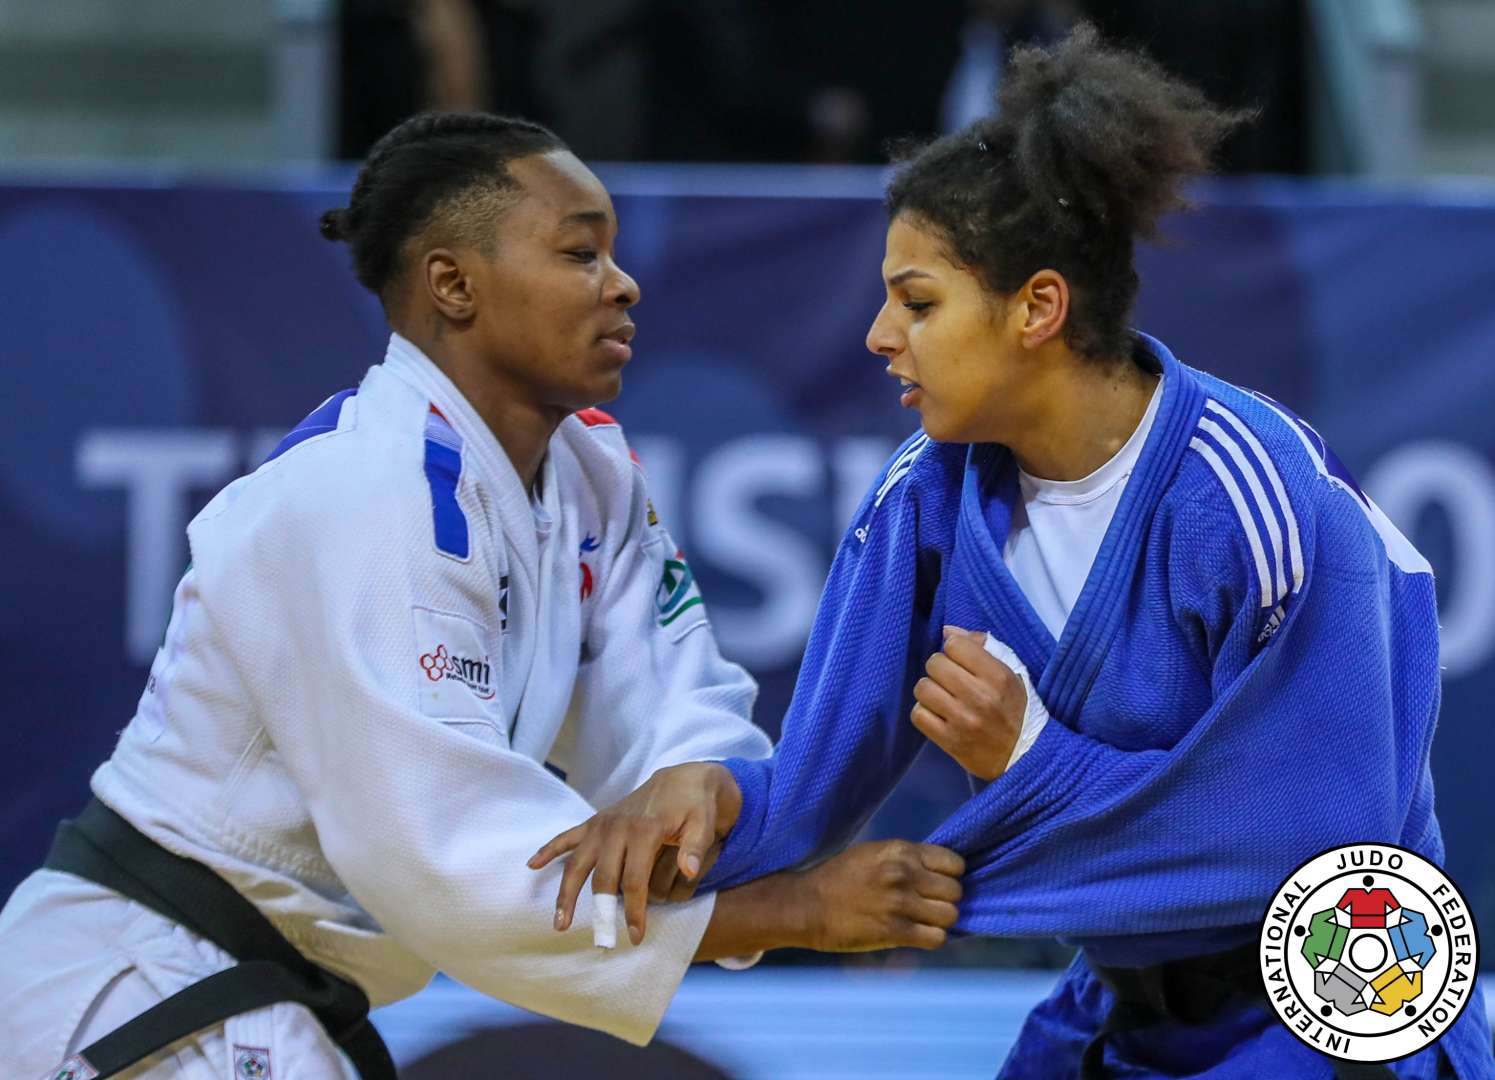 Audrey Tcheumeo stays unbeaten in 2018 with Tbilisi triumph